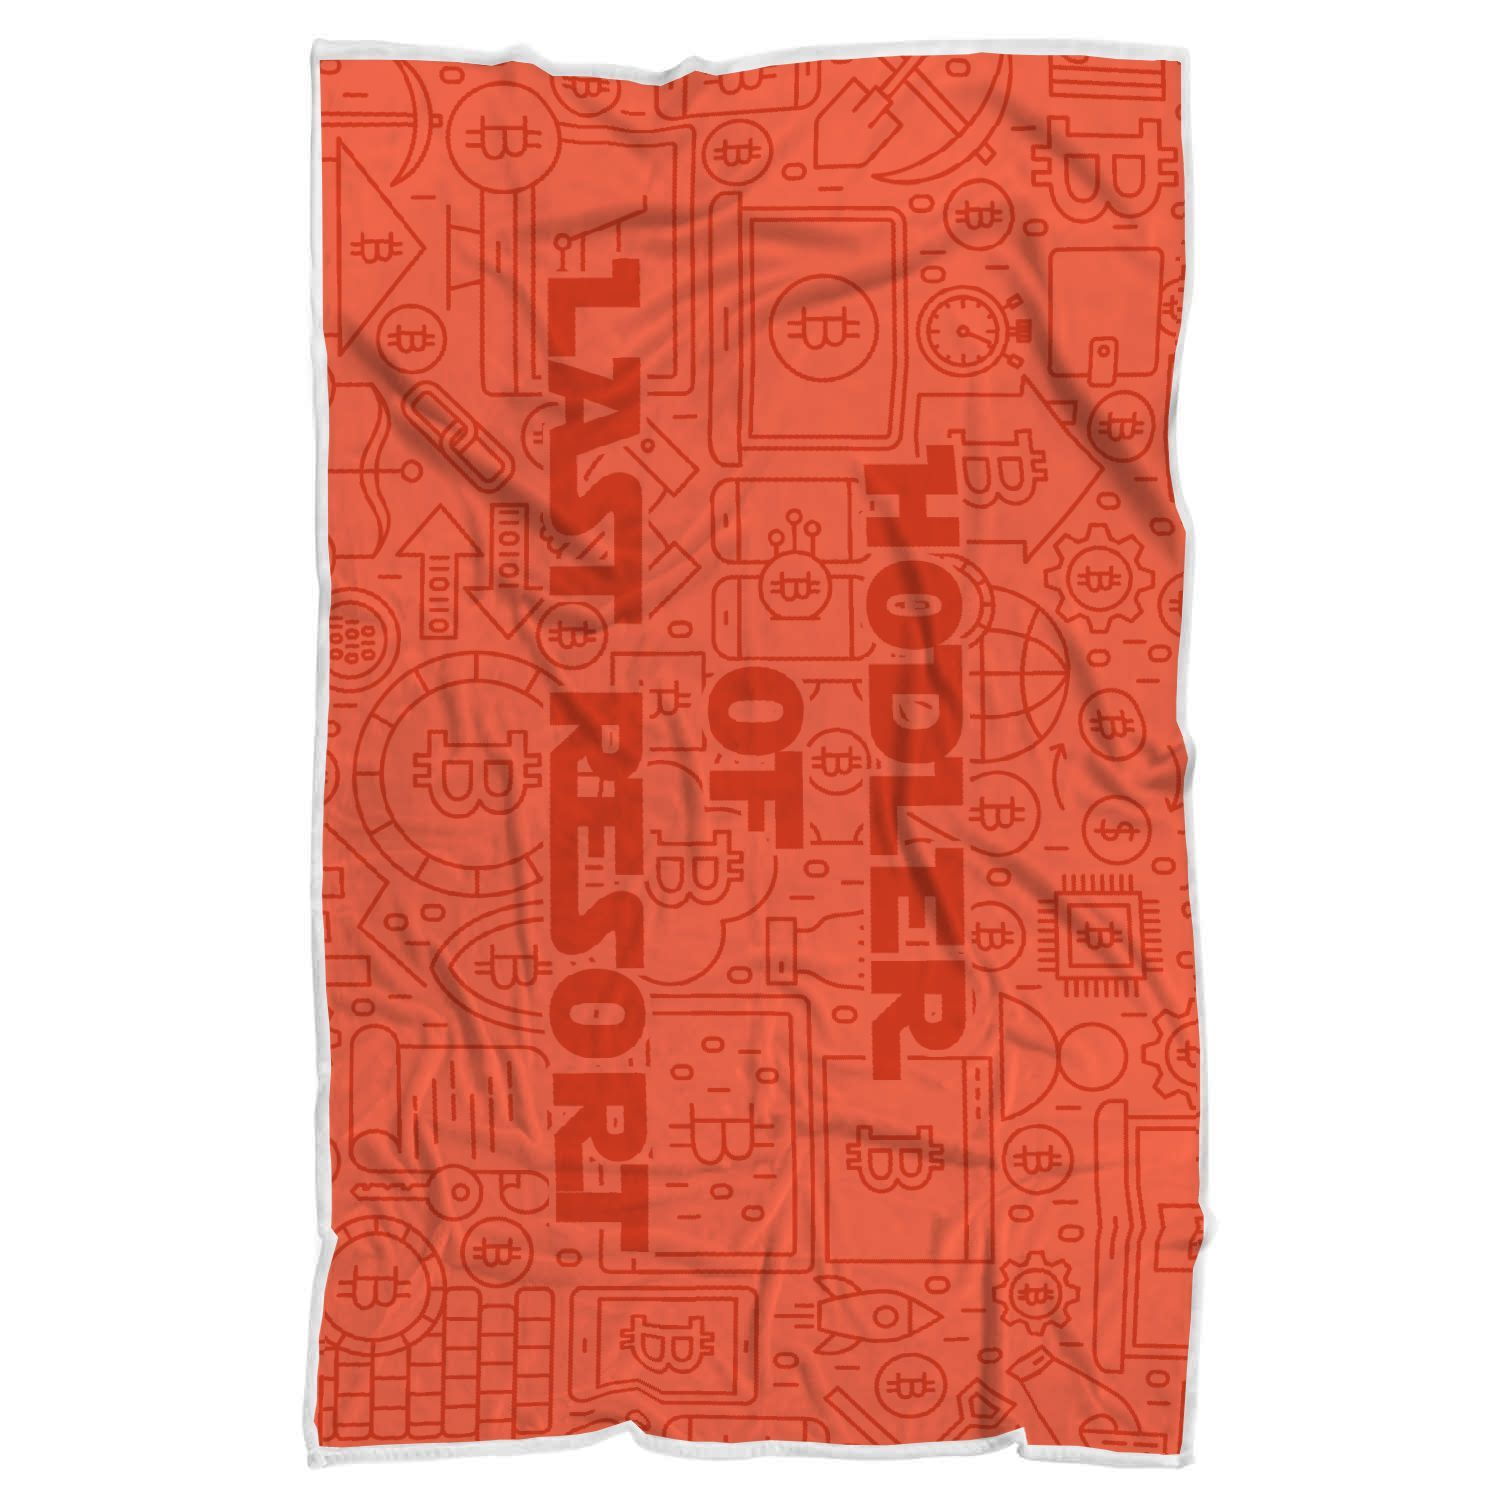 Bitcoin Blanket Imperial Red Hodler Of Last Resort Blanket